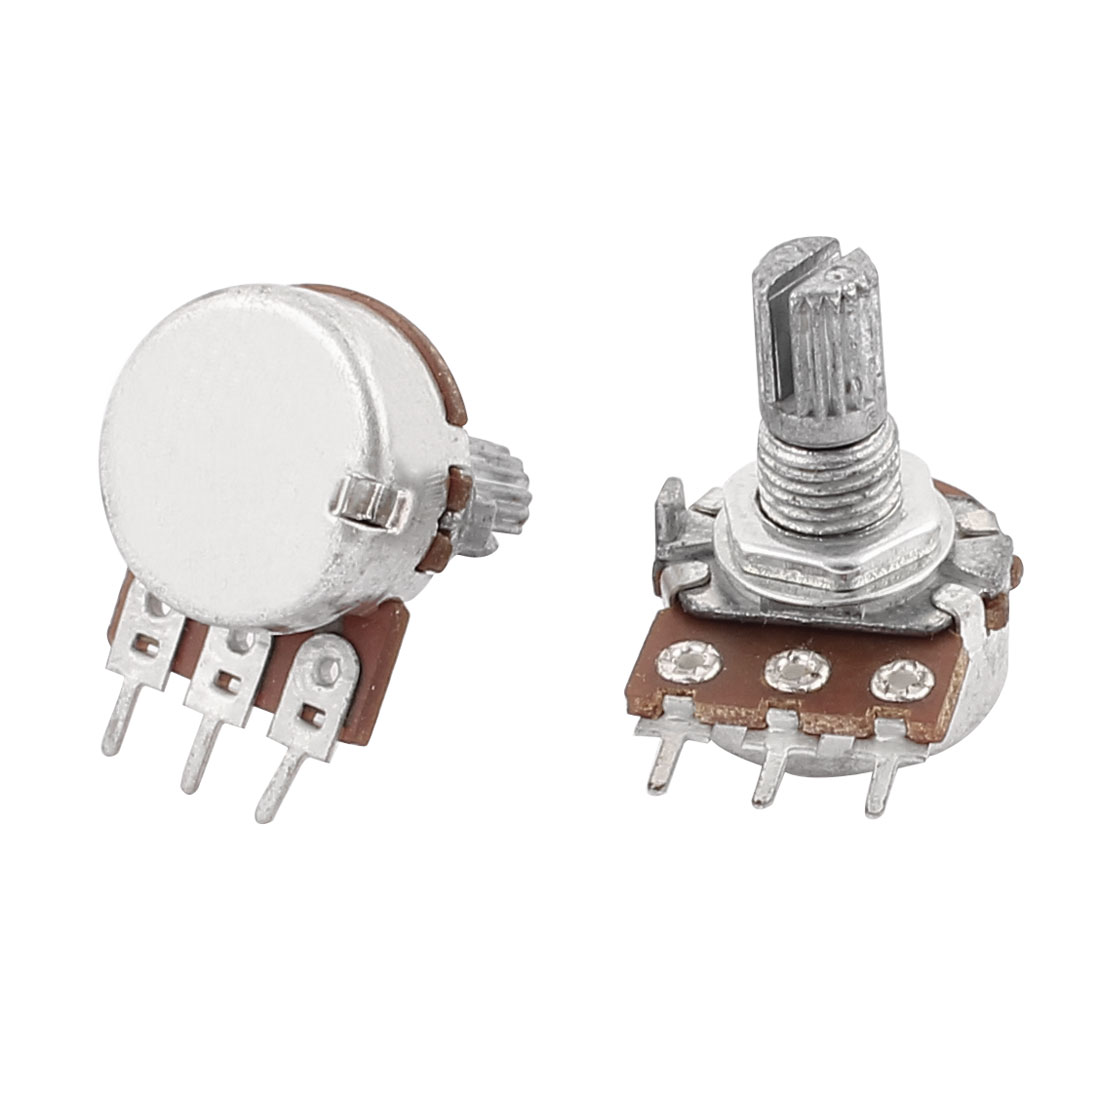 2 Pcs B10K 10k Ohm Linear Rotary Shaft Audio Taper Potentiometers